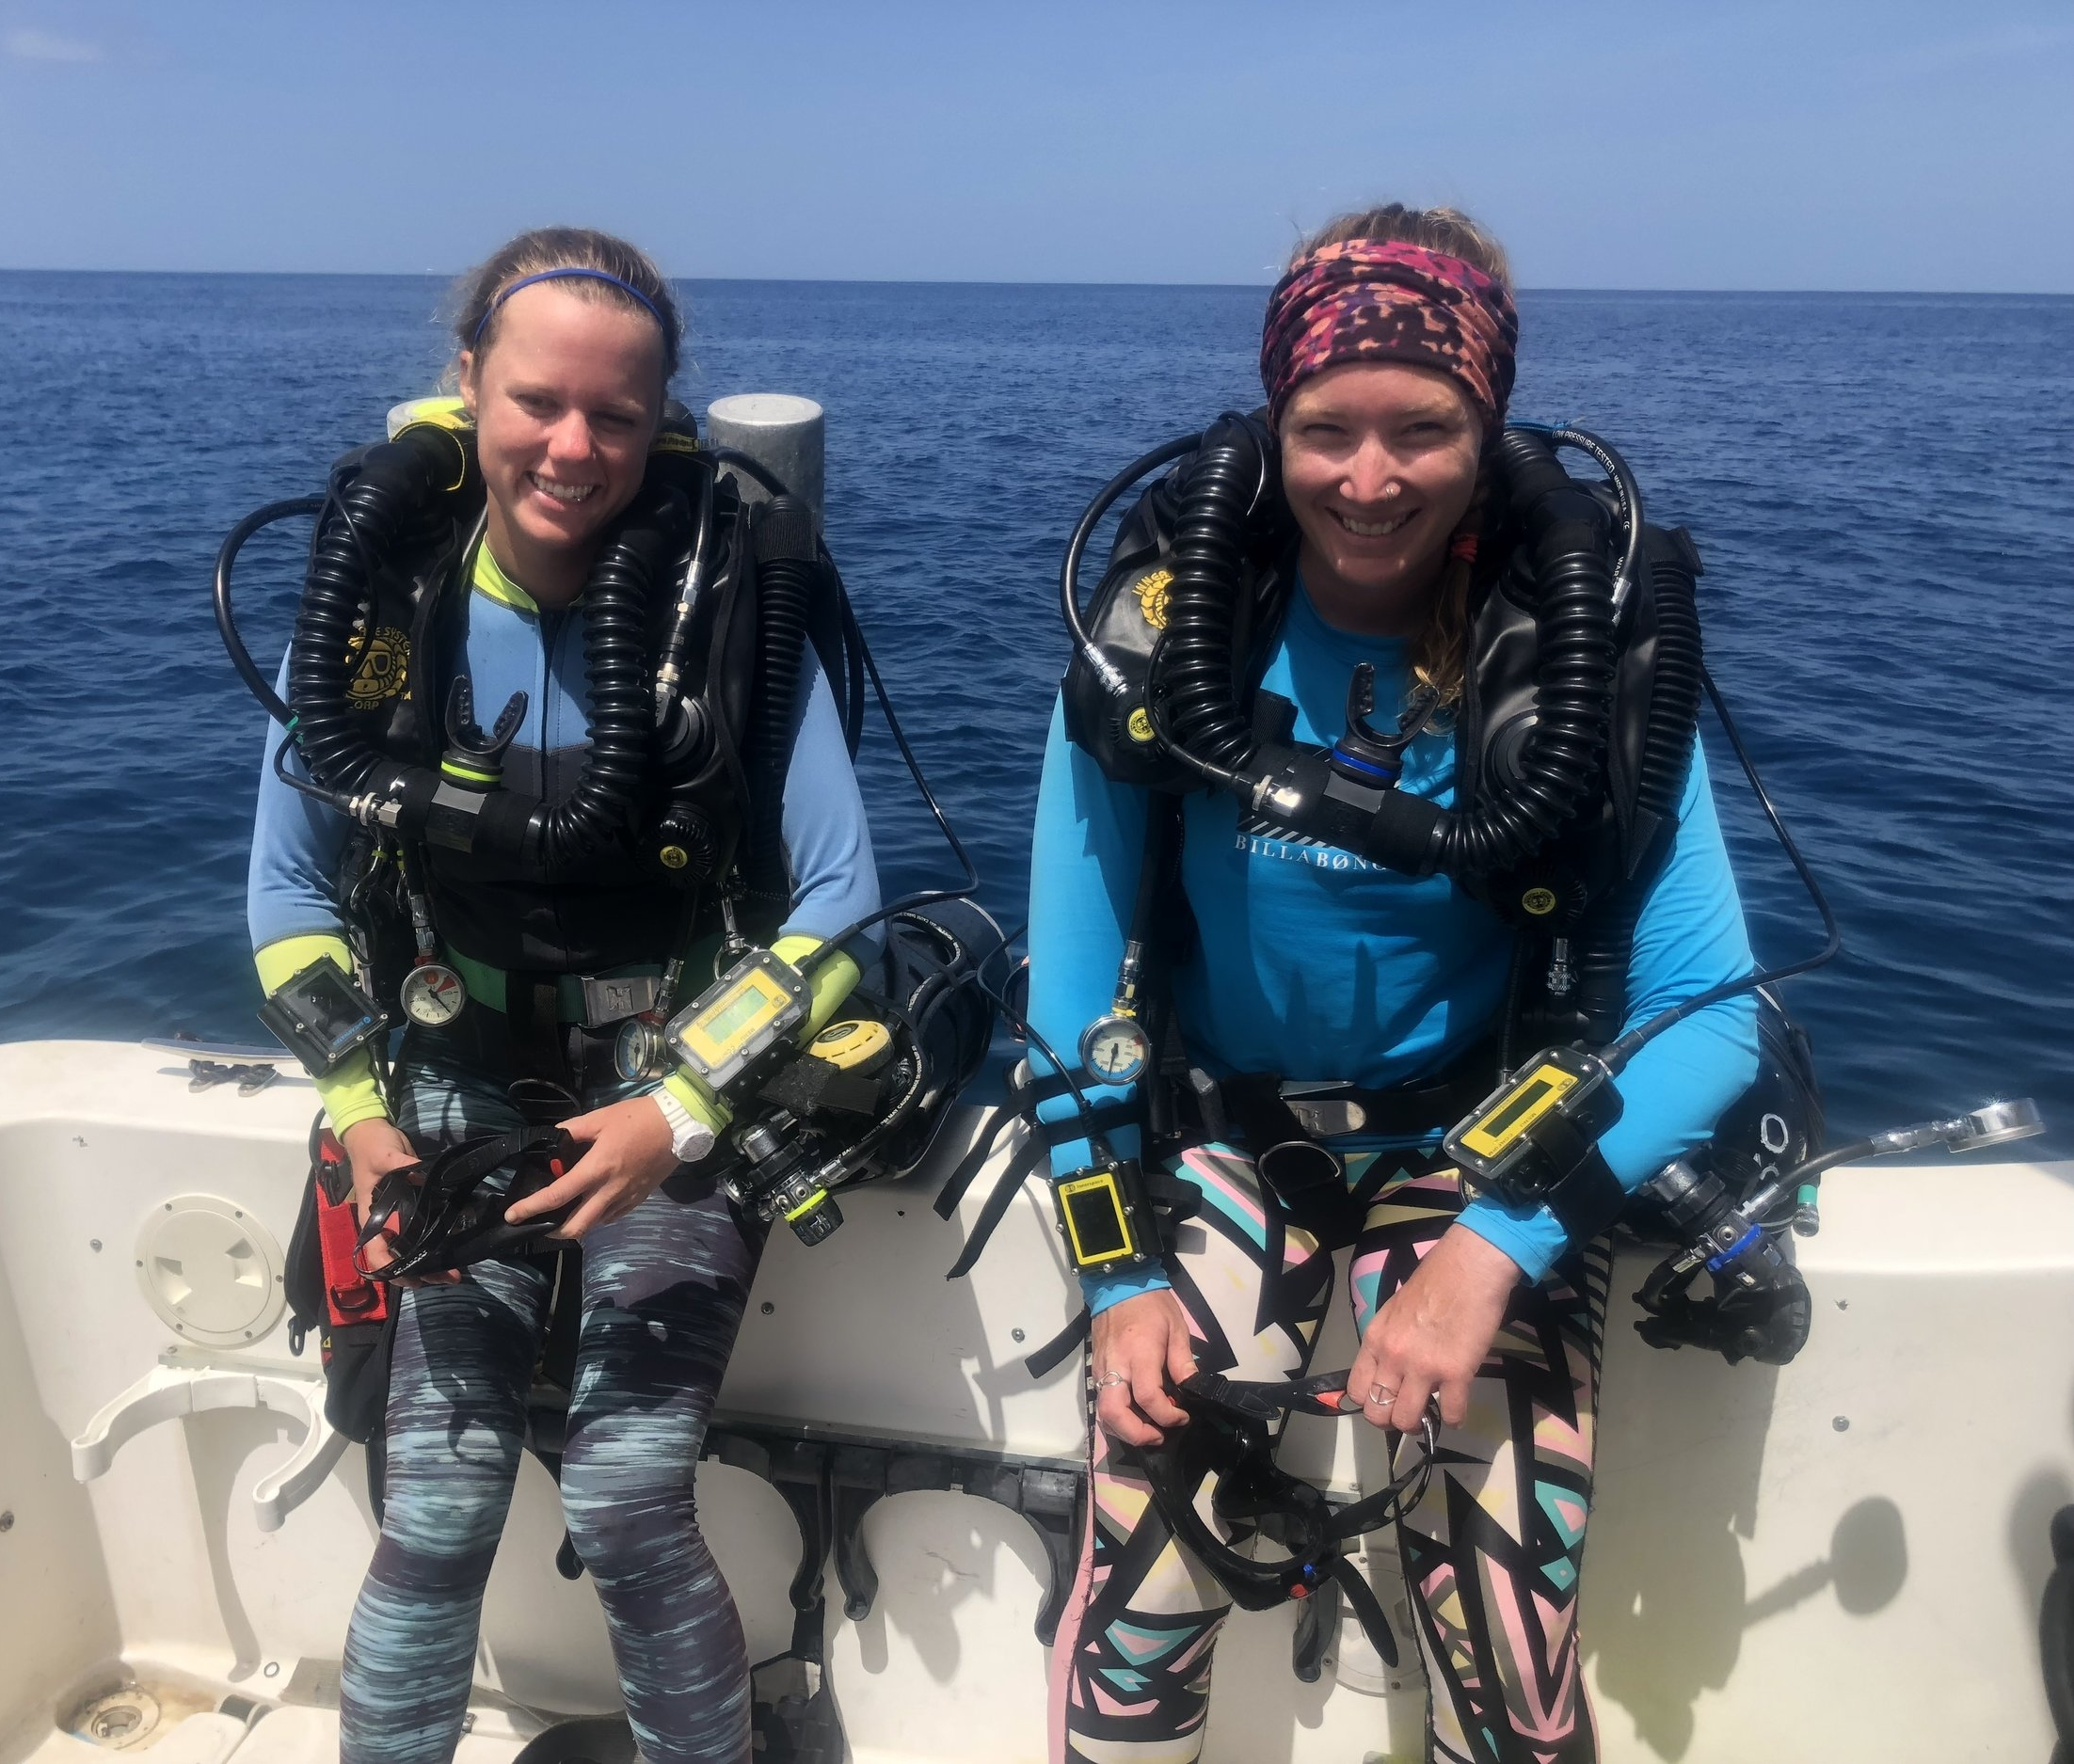 Sarah Heidmann and Rosmin Ennis have also earned certification in closed circuit rebreathers, greatly expanding the time and depth available to them for deep water coral and fish ecology research